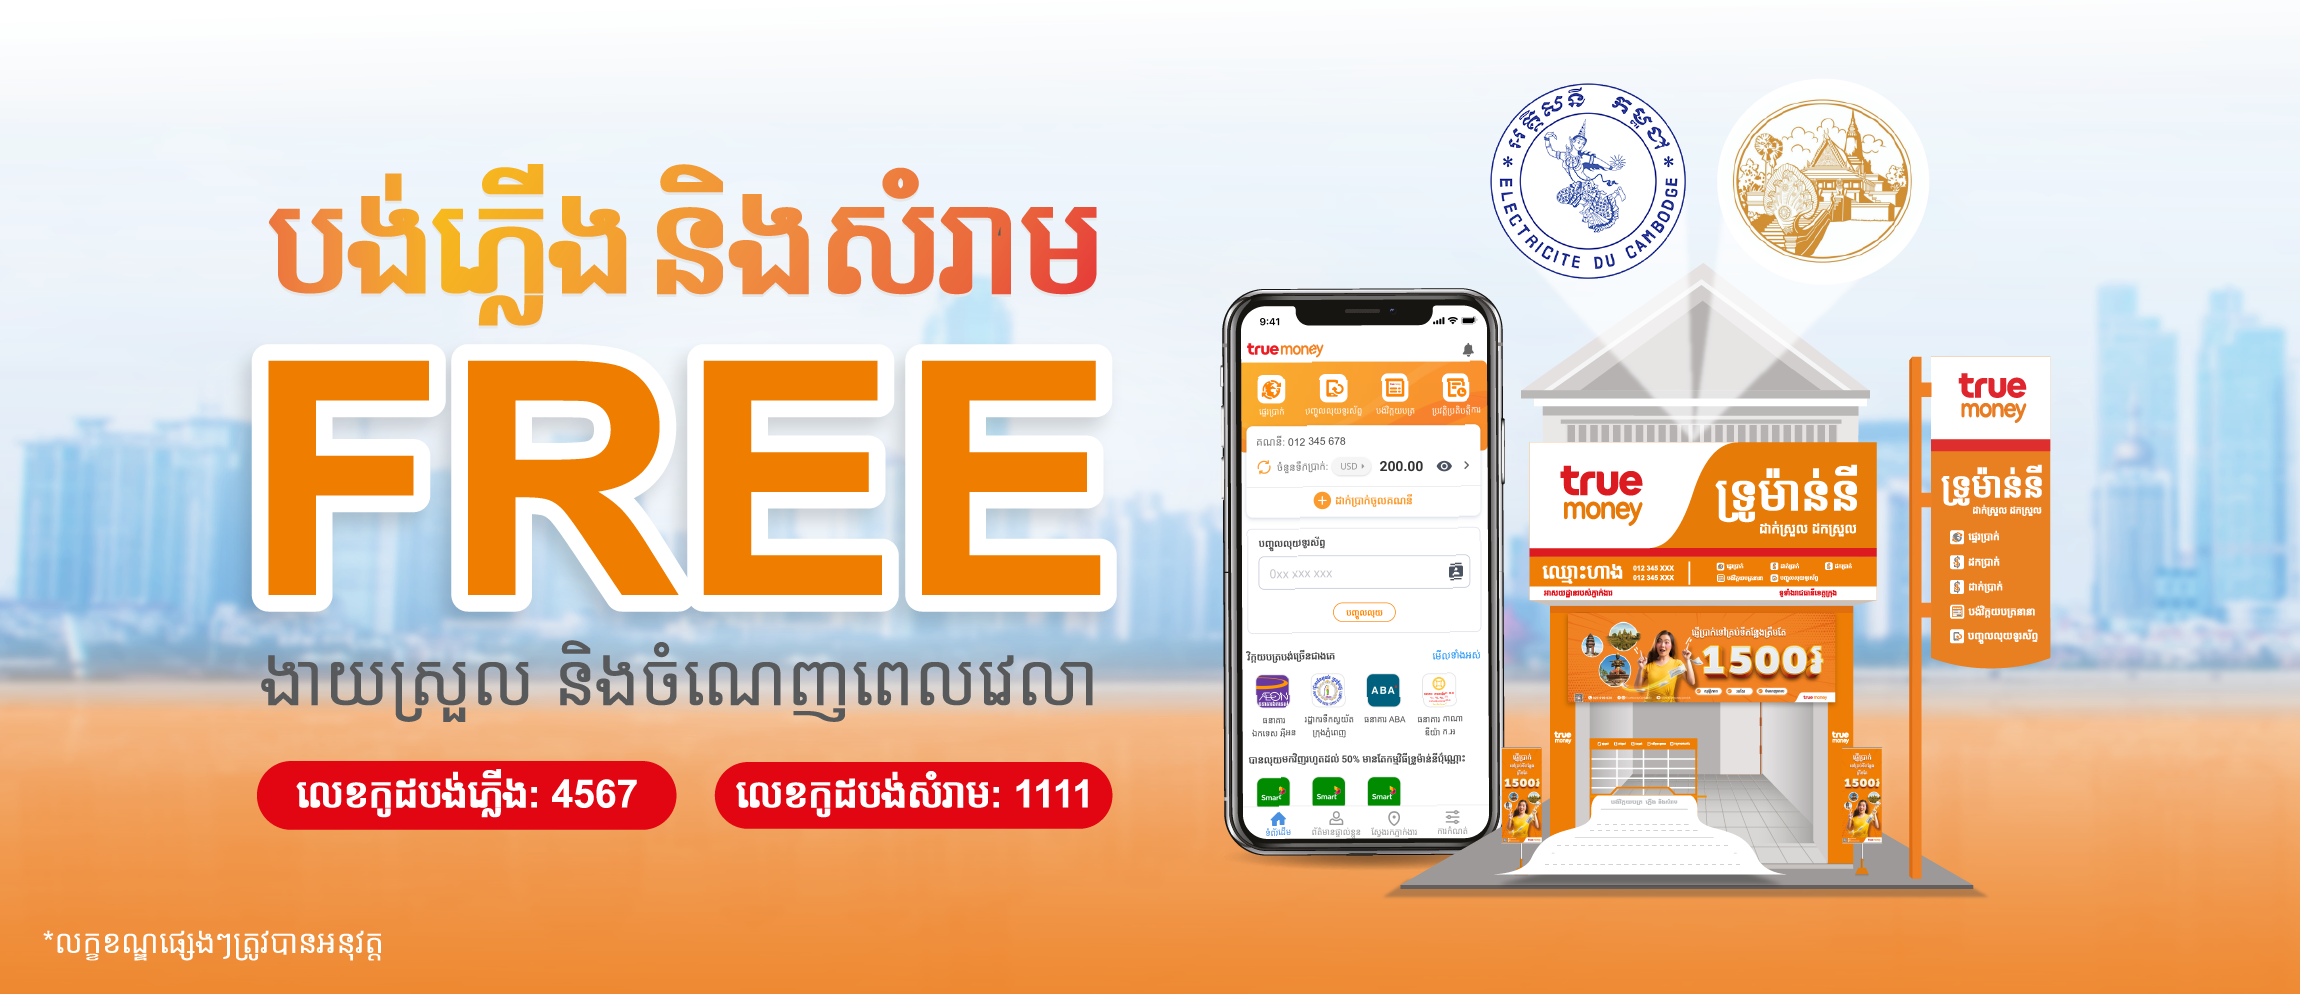 TRUEMONEY TEAMS UP WITH EDC AND PHNOM PENH WASTE MANAGEMENT TO EXPAND CAMBODIA BILL PAYMENTS